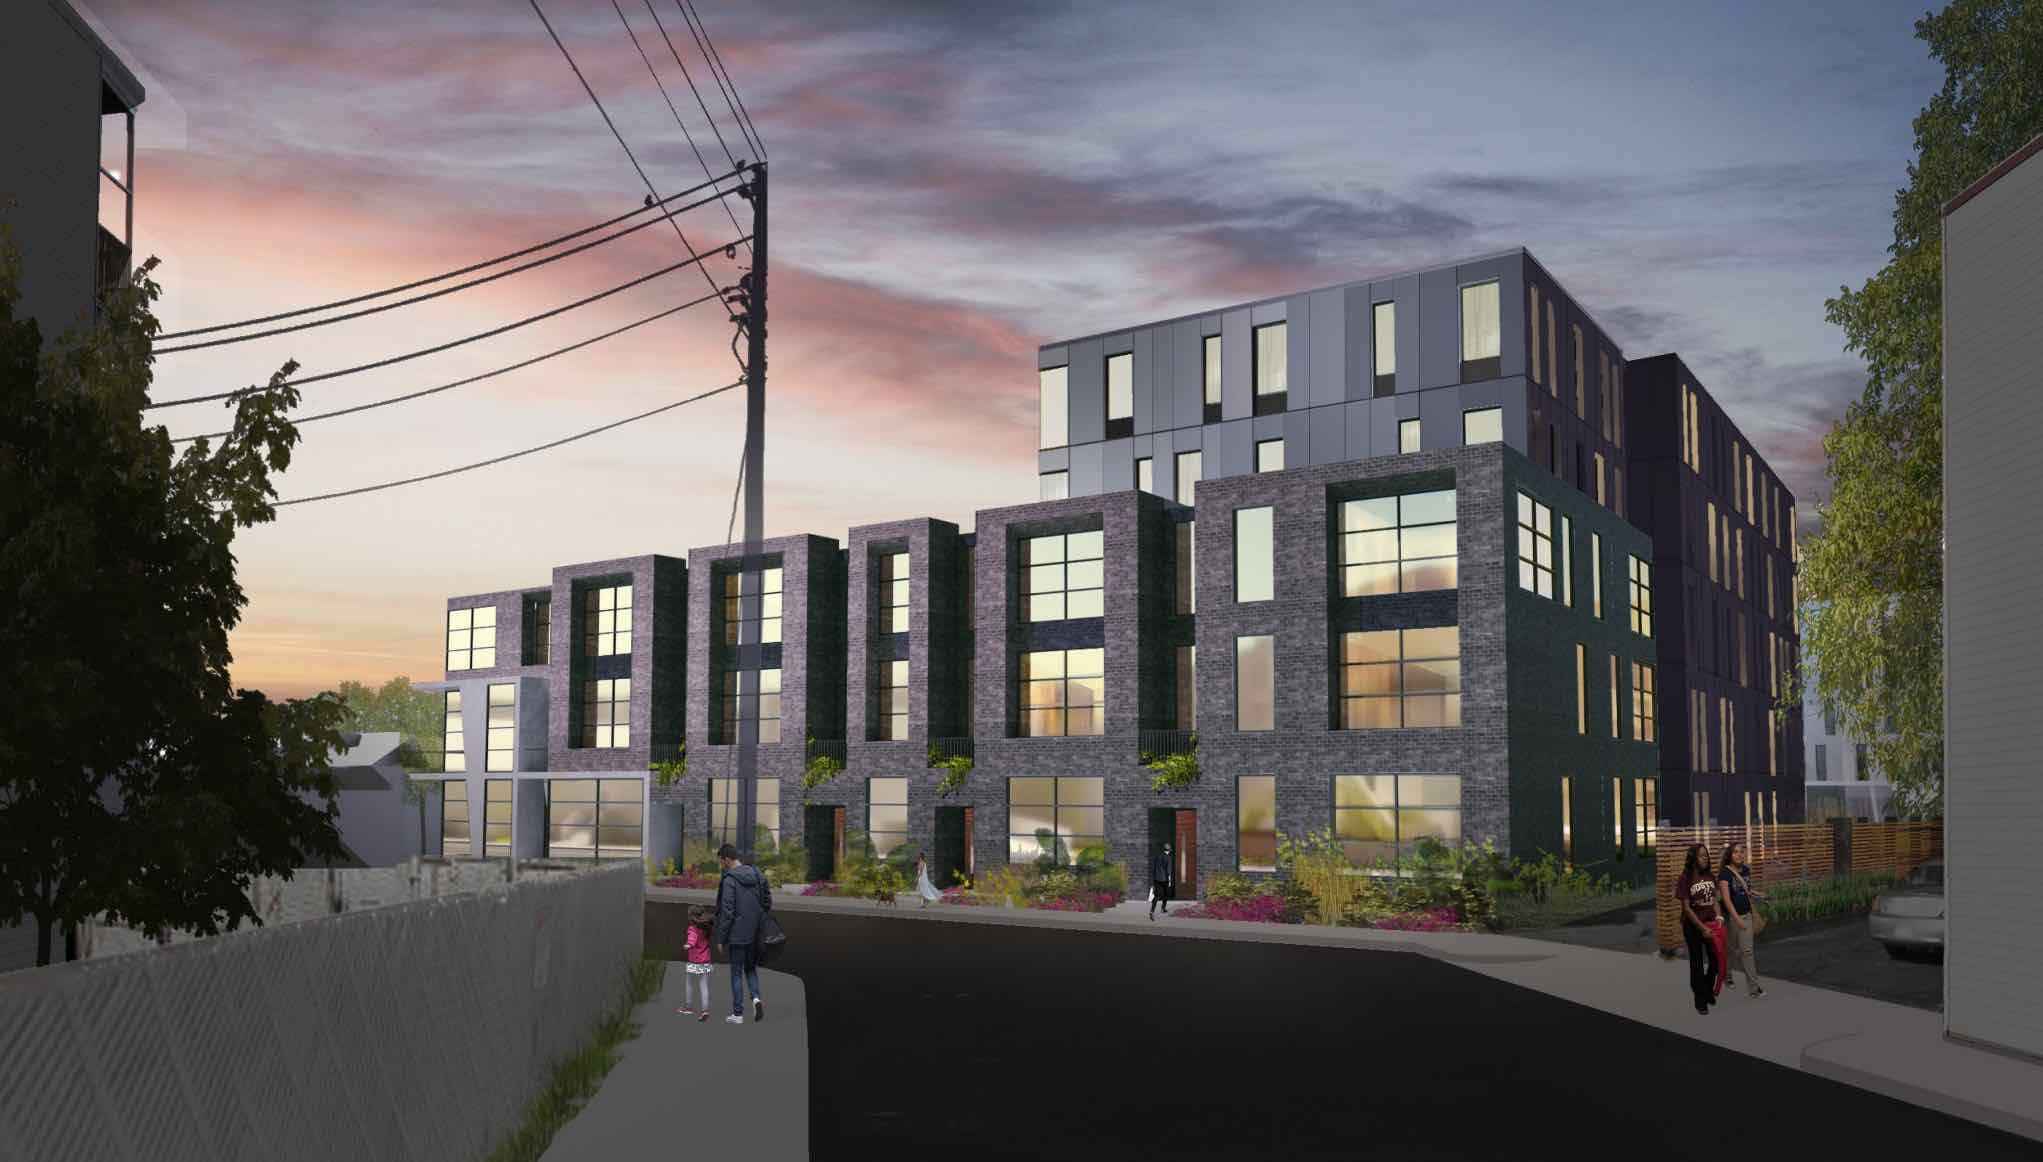 144 addison street 175 mcclellan highway route 1a east boston proposed residential apartment development gate residential bulgroup properties